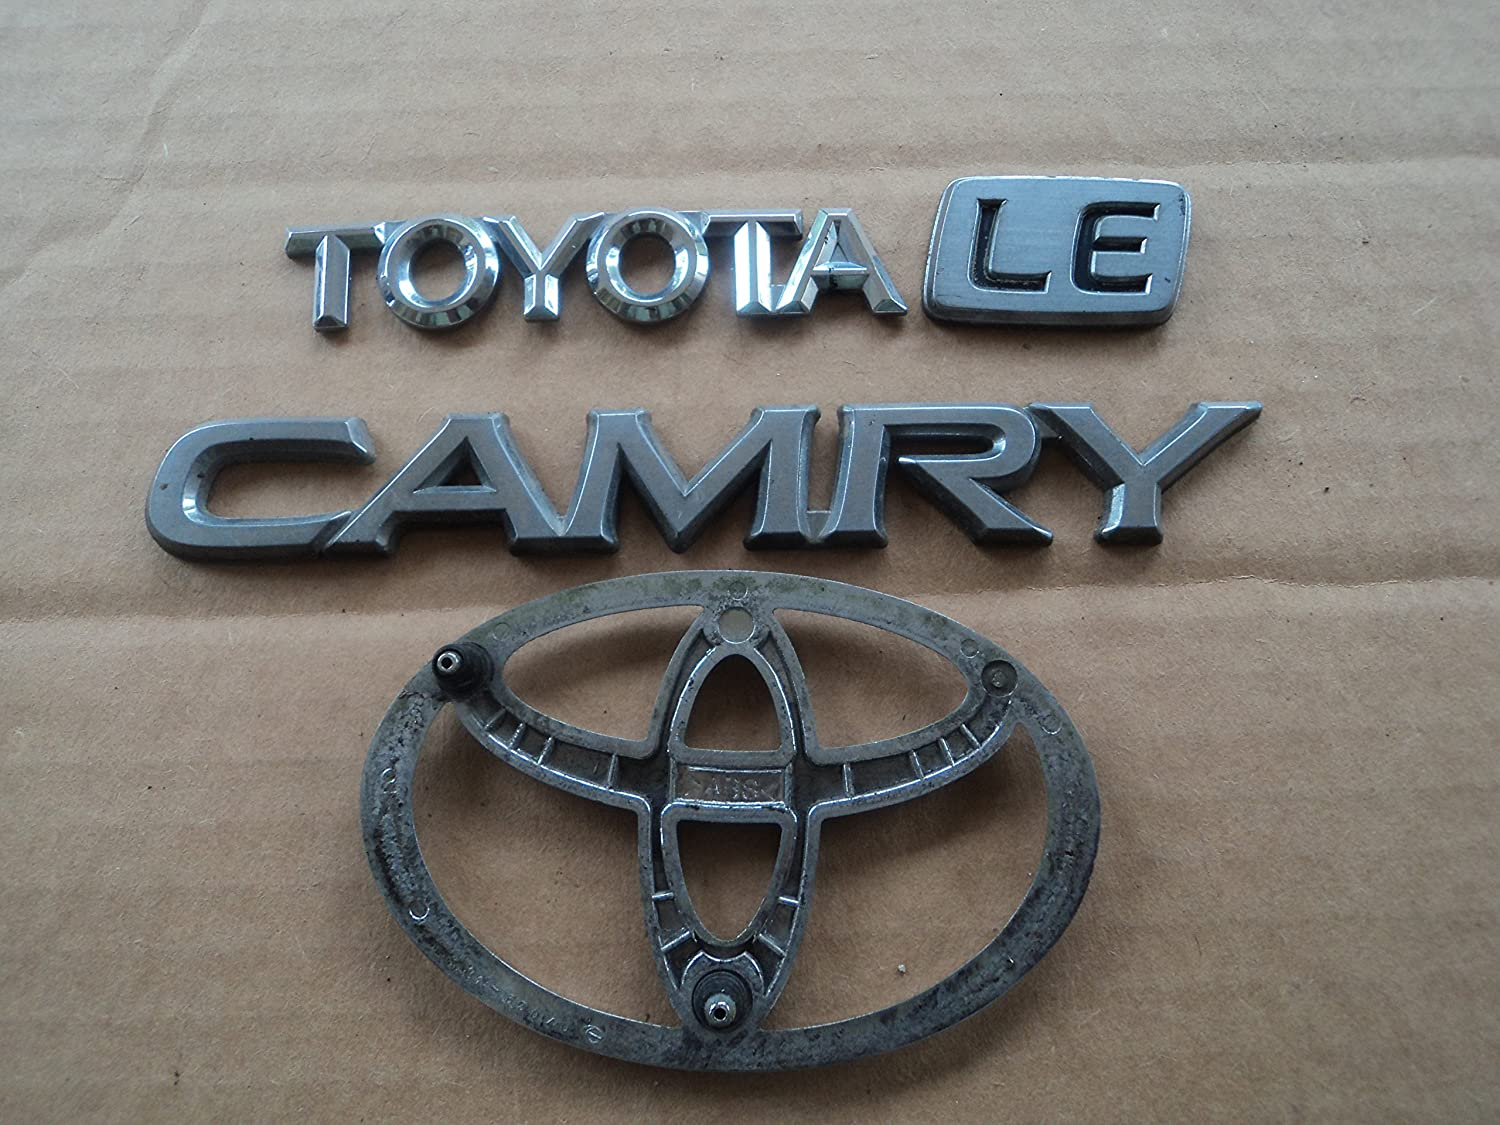 Toyota Camry LE trunk emblem badge decal logo rear chrome OEM Genuine Stock